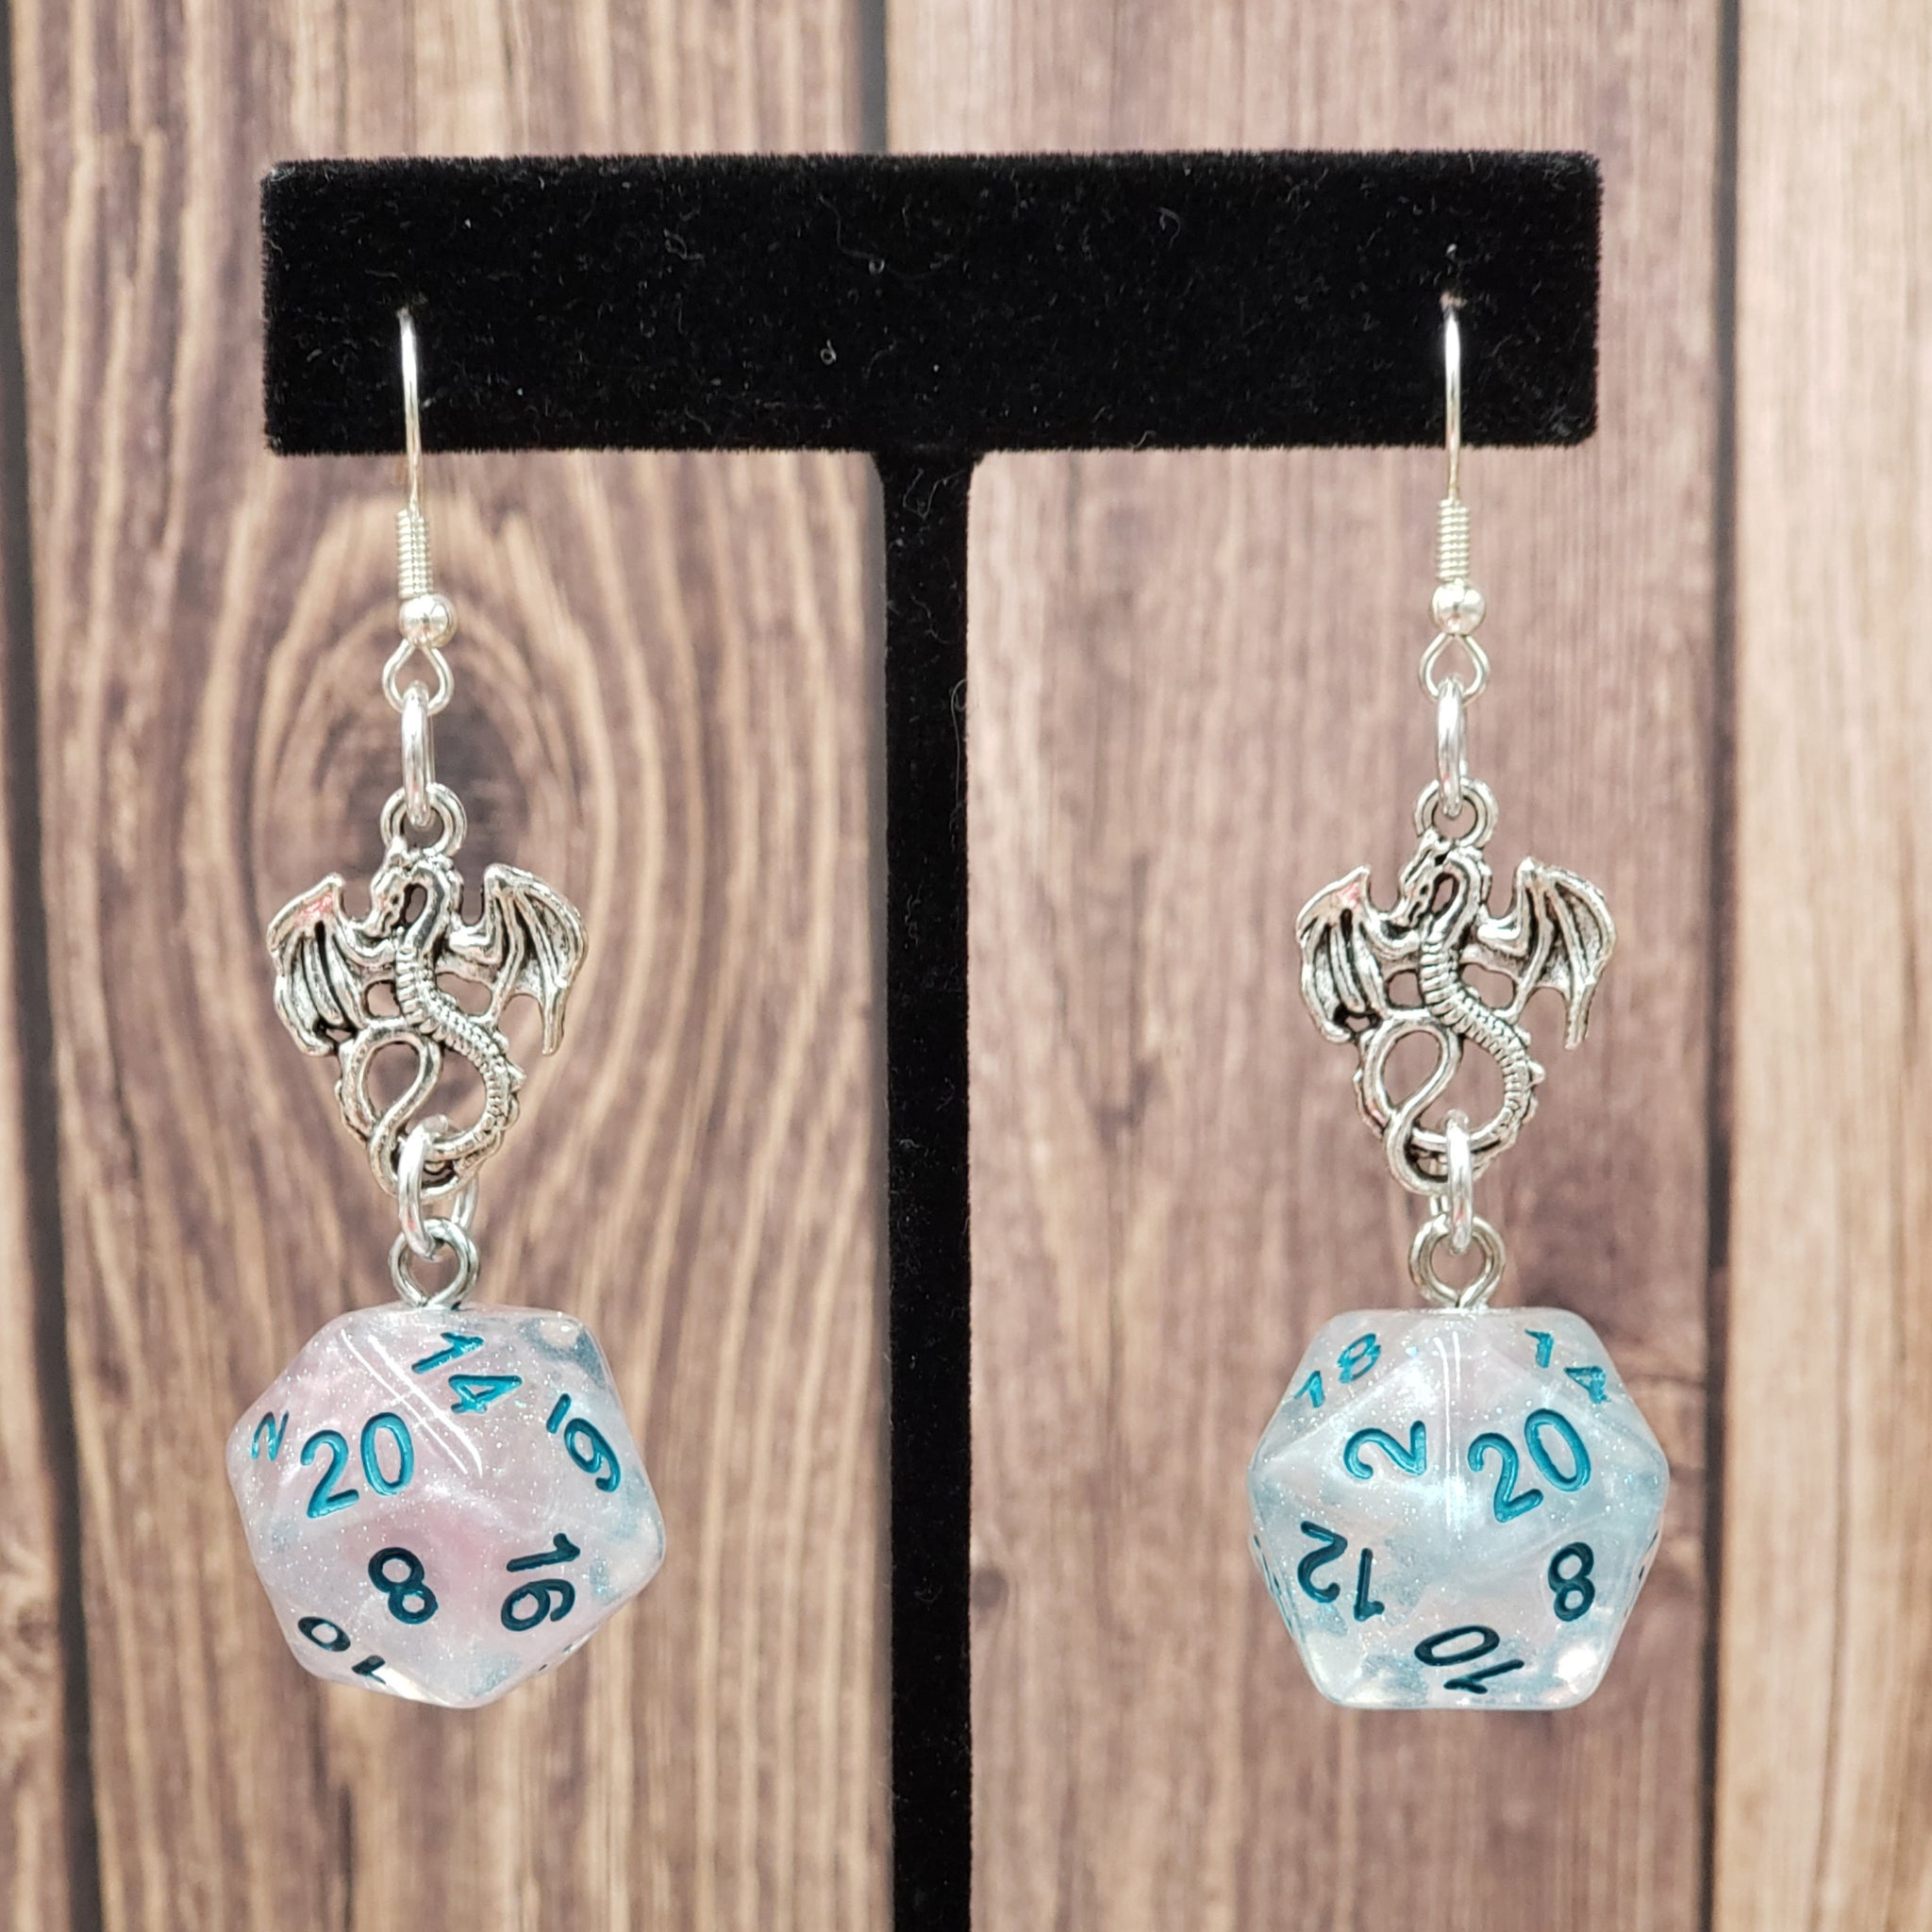 Winter Walker Dragon Nat20 Earrings